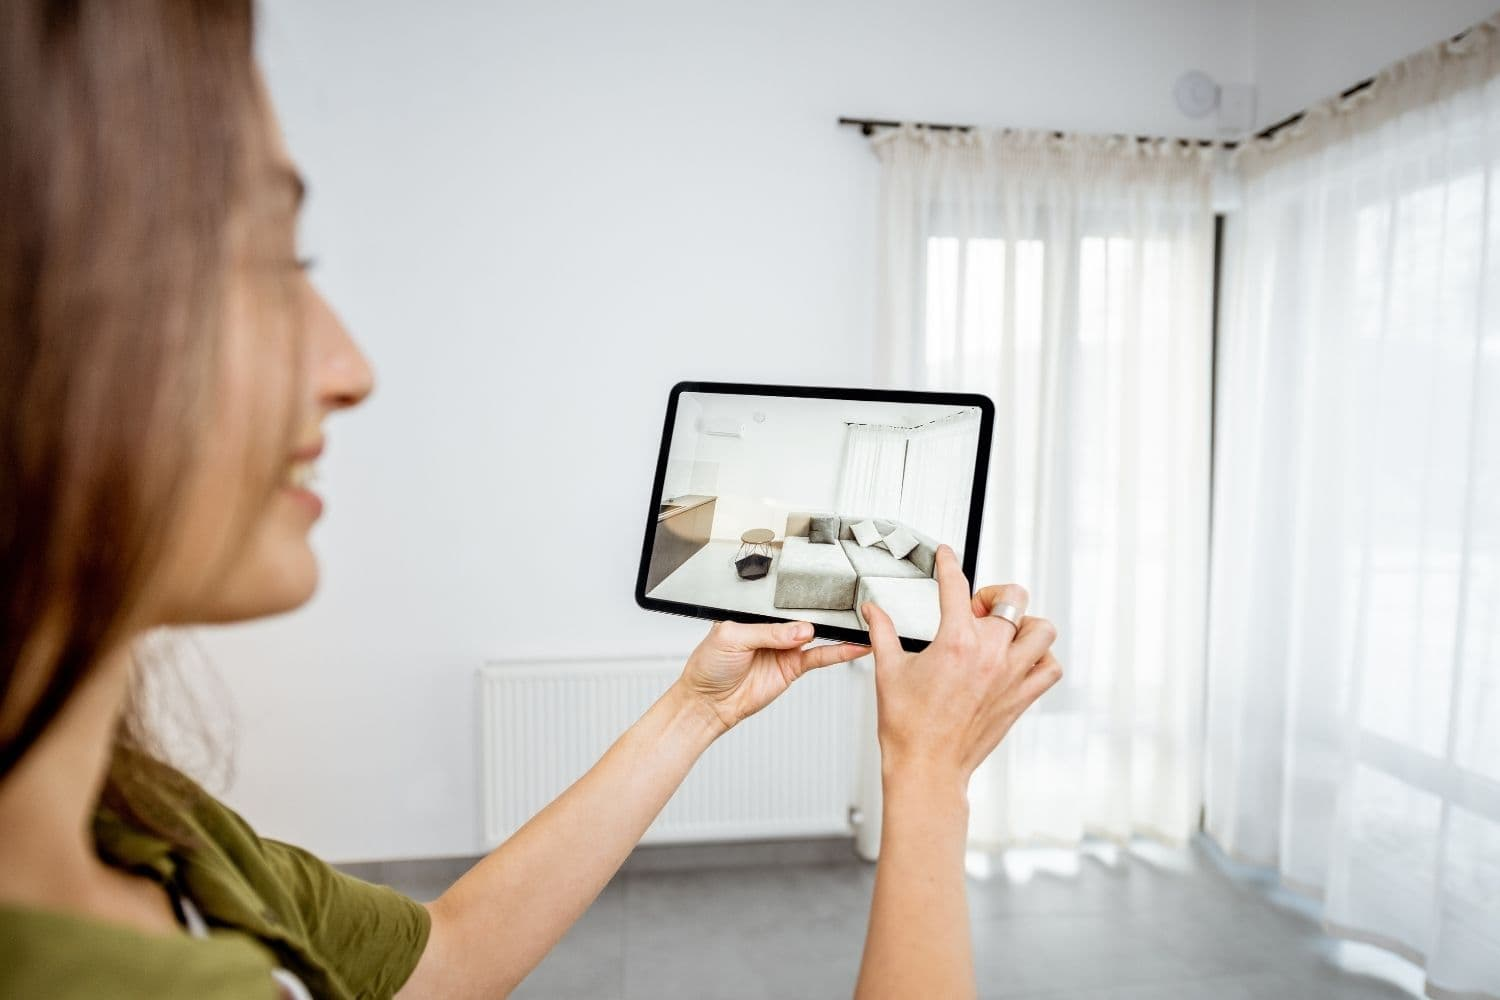 web based augmented reality experiences